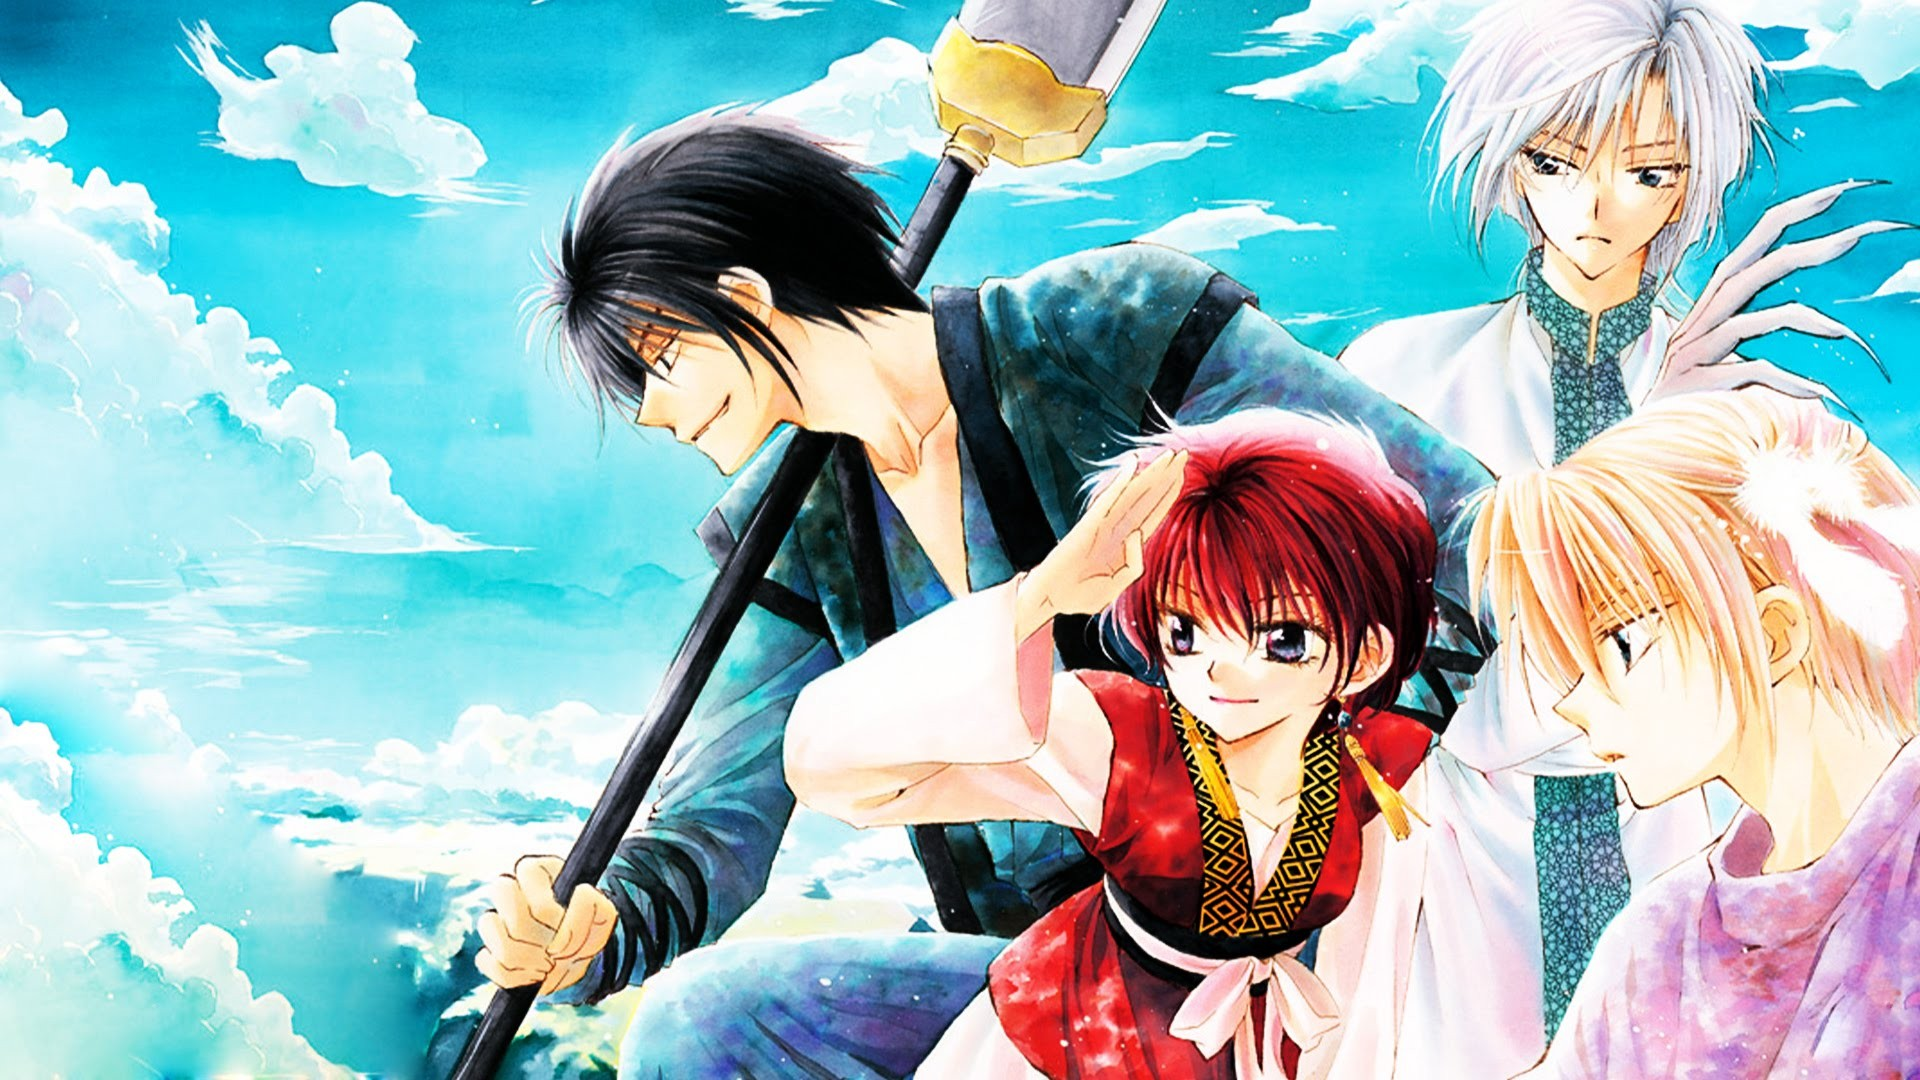 Akatsuki No Yona Yona Akatsuki No Yona Son Hak Kija Akatsuki No Yona Yoon Akatsuki No Yona Wallpaper Resolution 1920x1080 Id 643062 Wallha Com